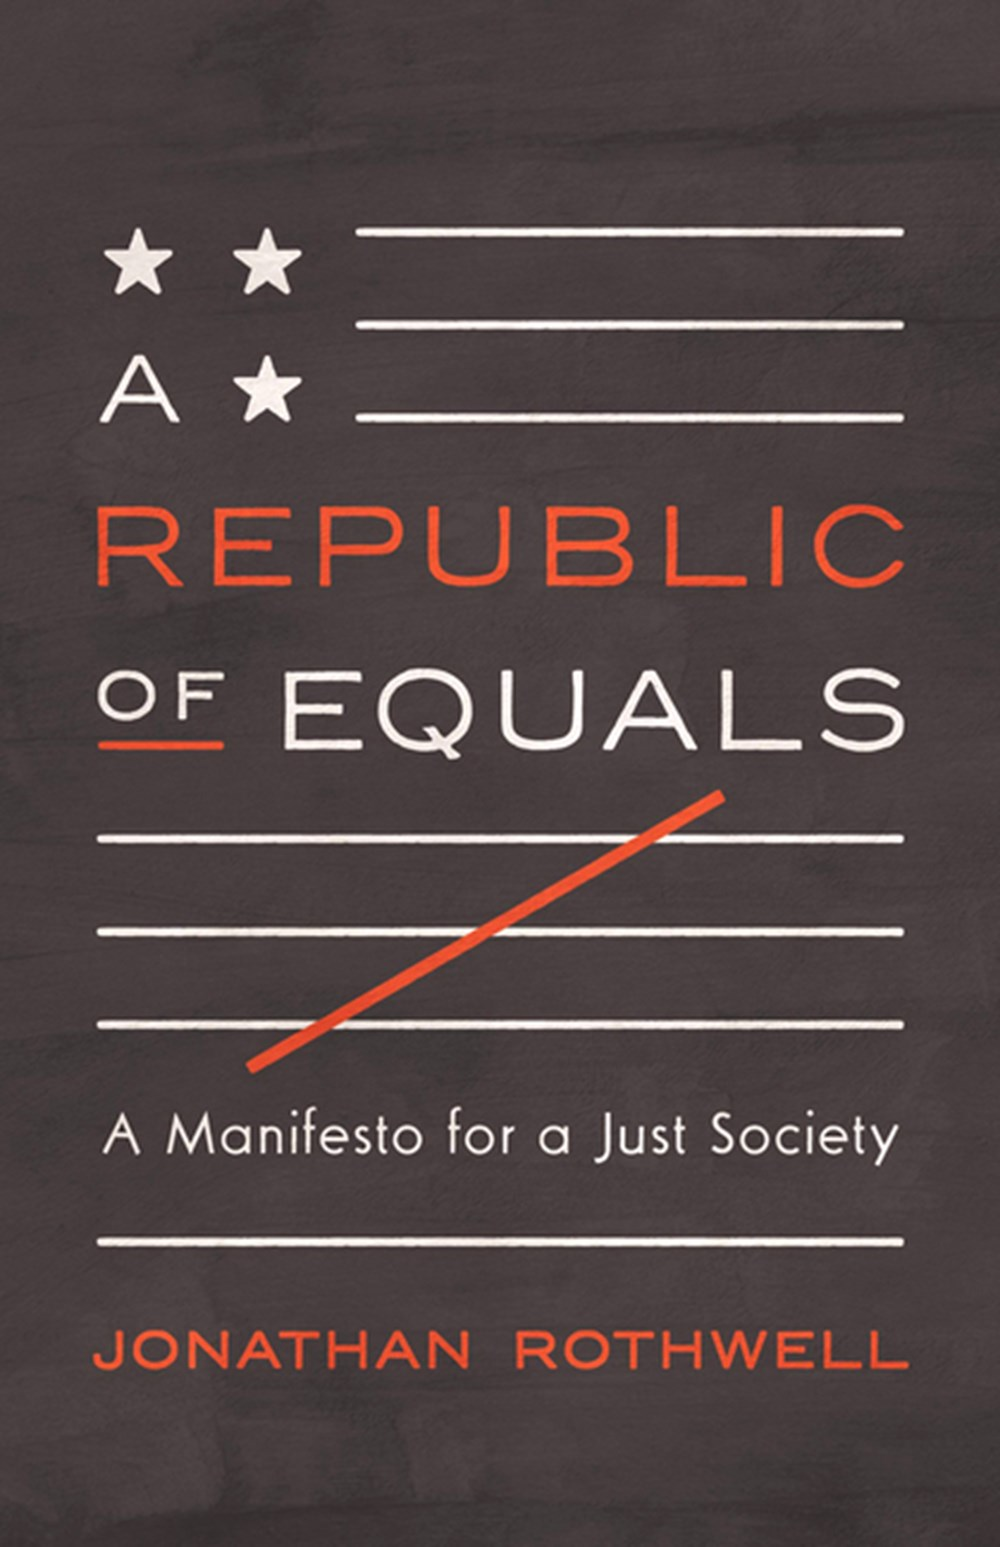 Republic of Equals: A Manifesto for a Just Society